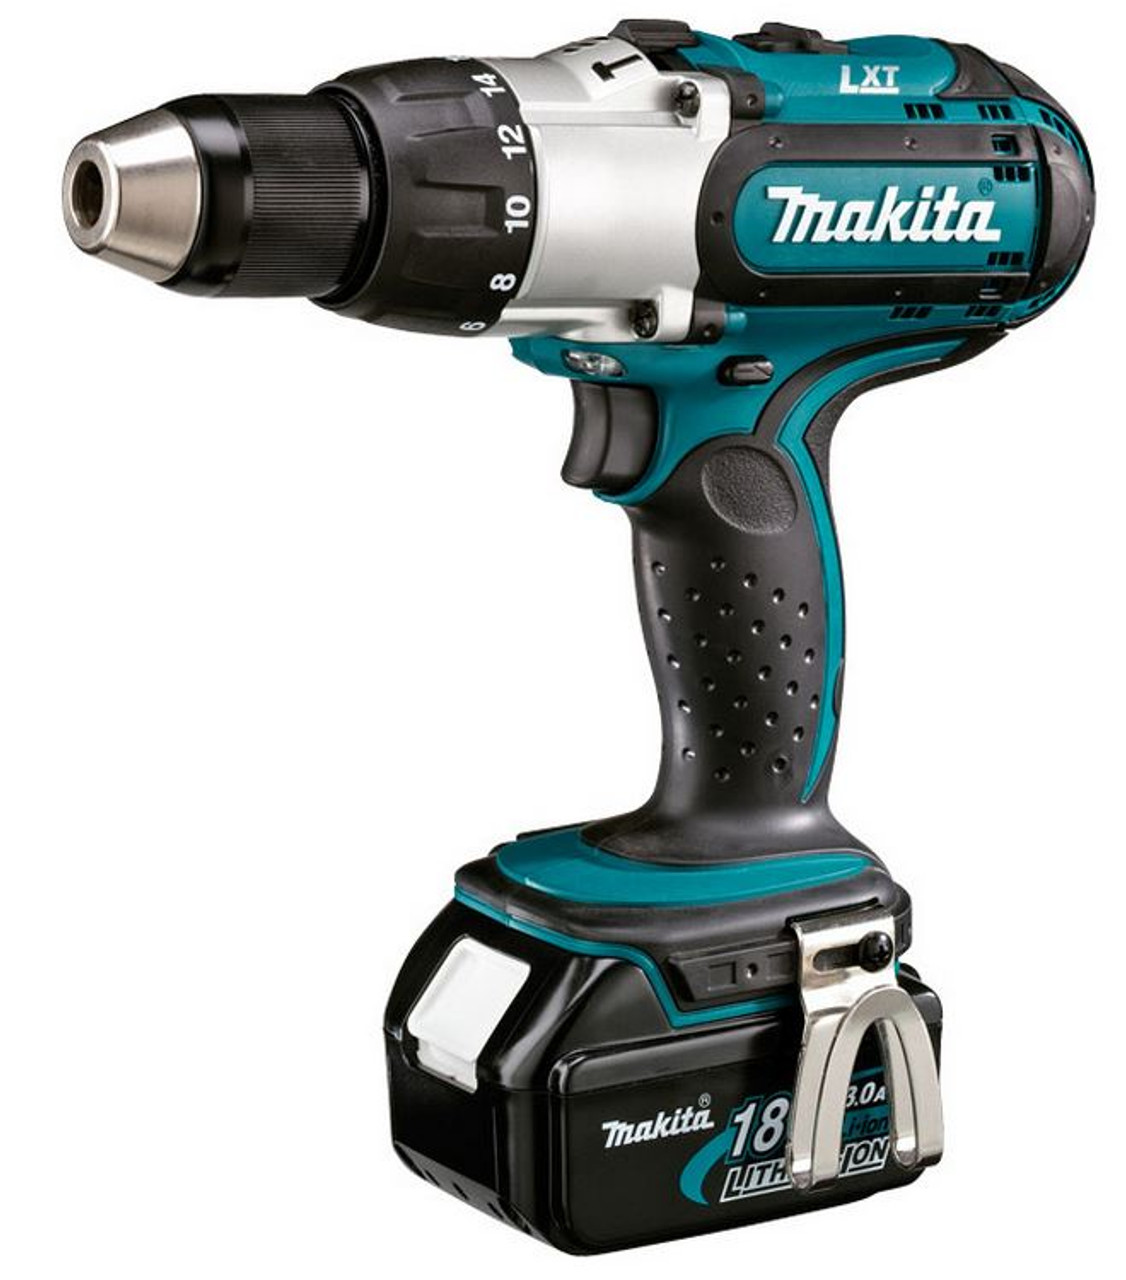 Makita Mobile Driver Drill 13mm (3 Speed), 18V Li-Ion, 2 x 3.0Ah Batteries, Charger & Carry Case DDF451RFE